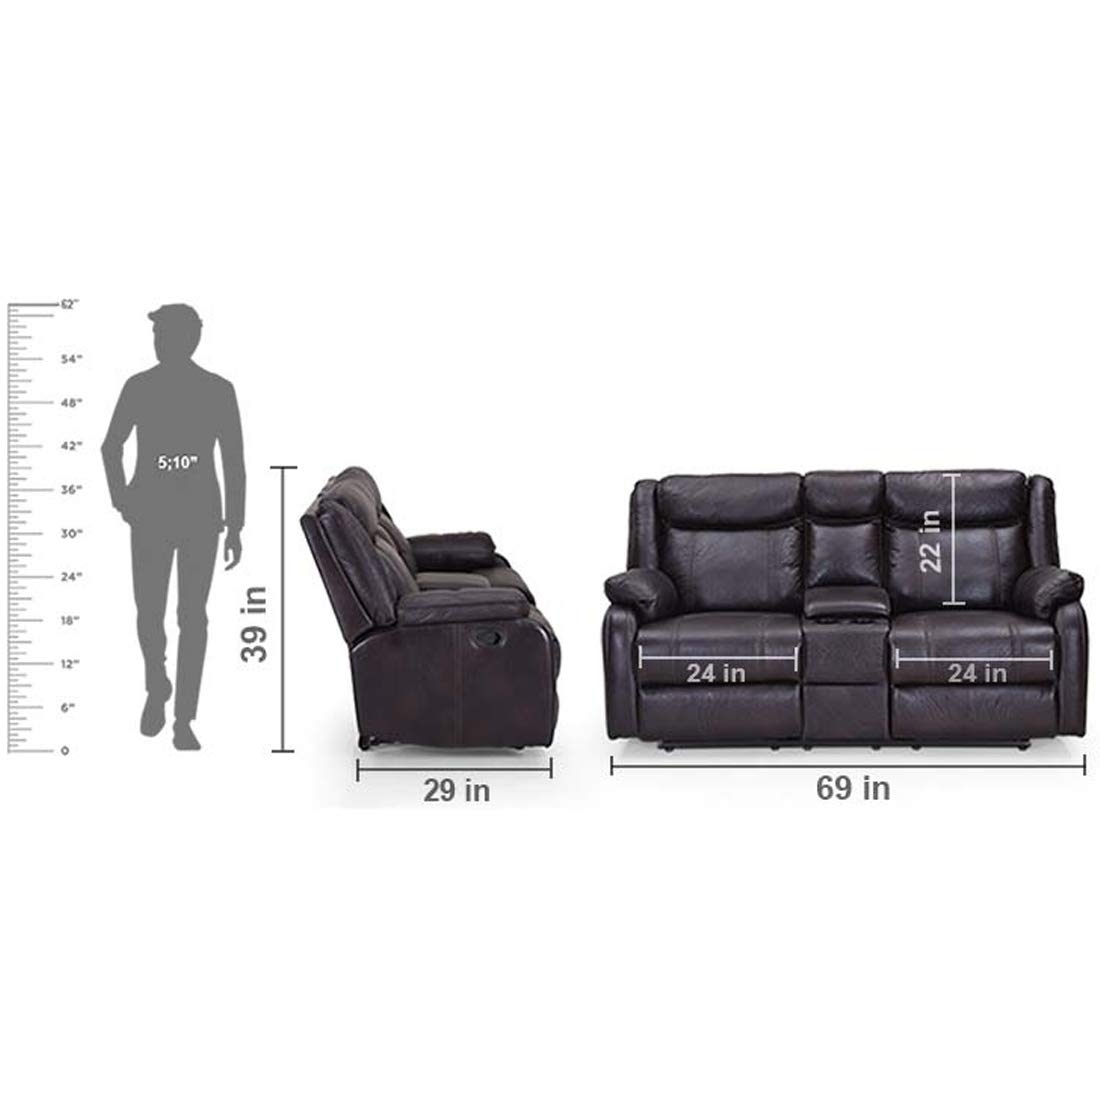 Relrom 2 seater sofa buy online Reclining Experience